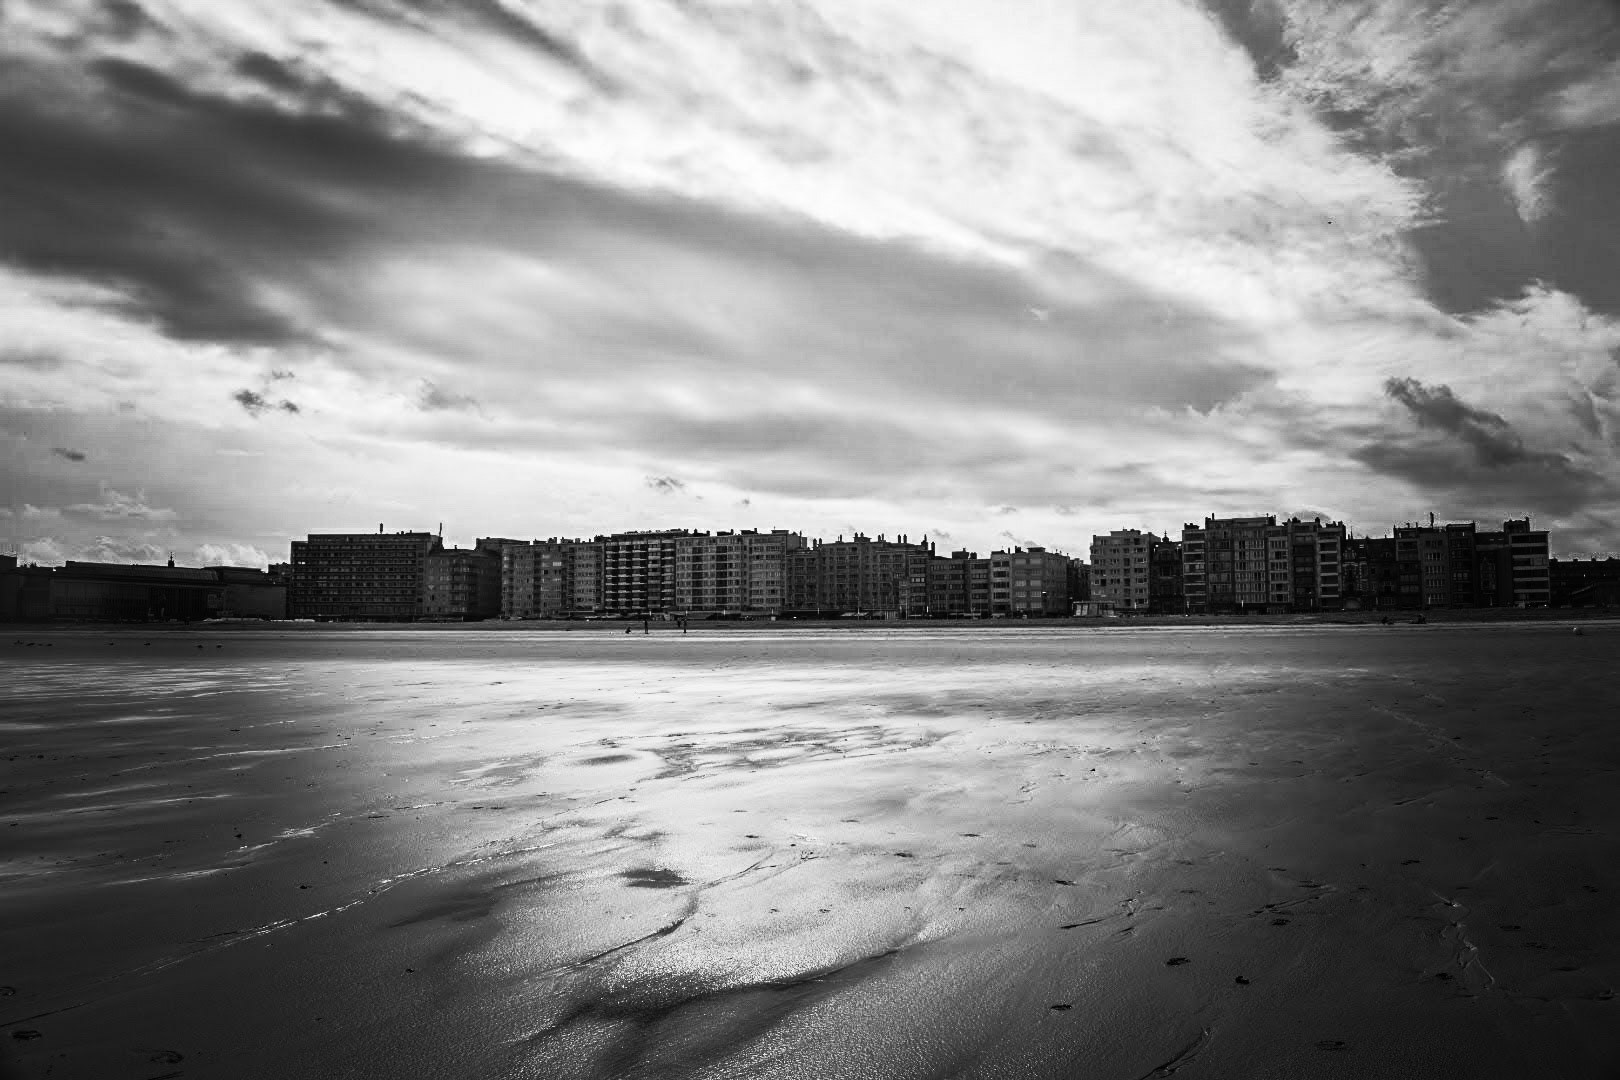 Untitled by Deruyver Ludovic